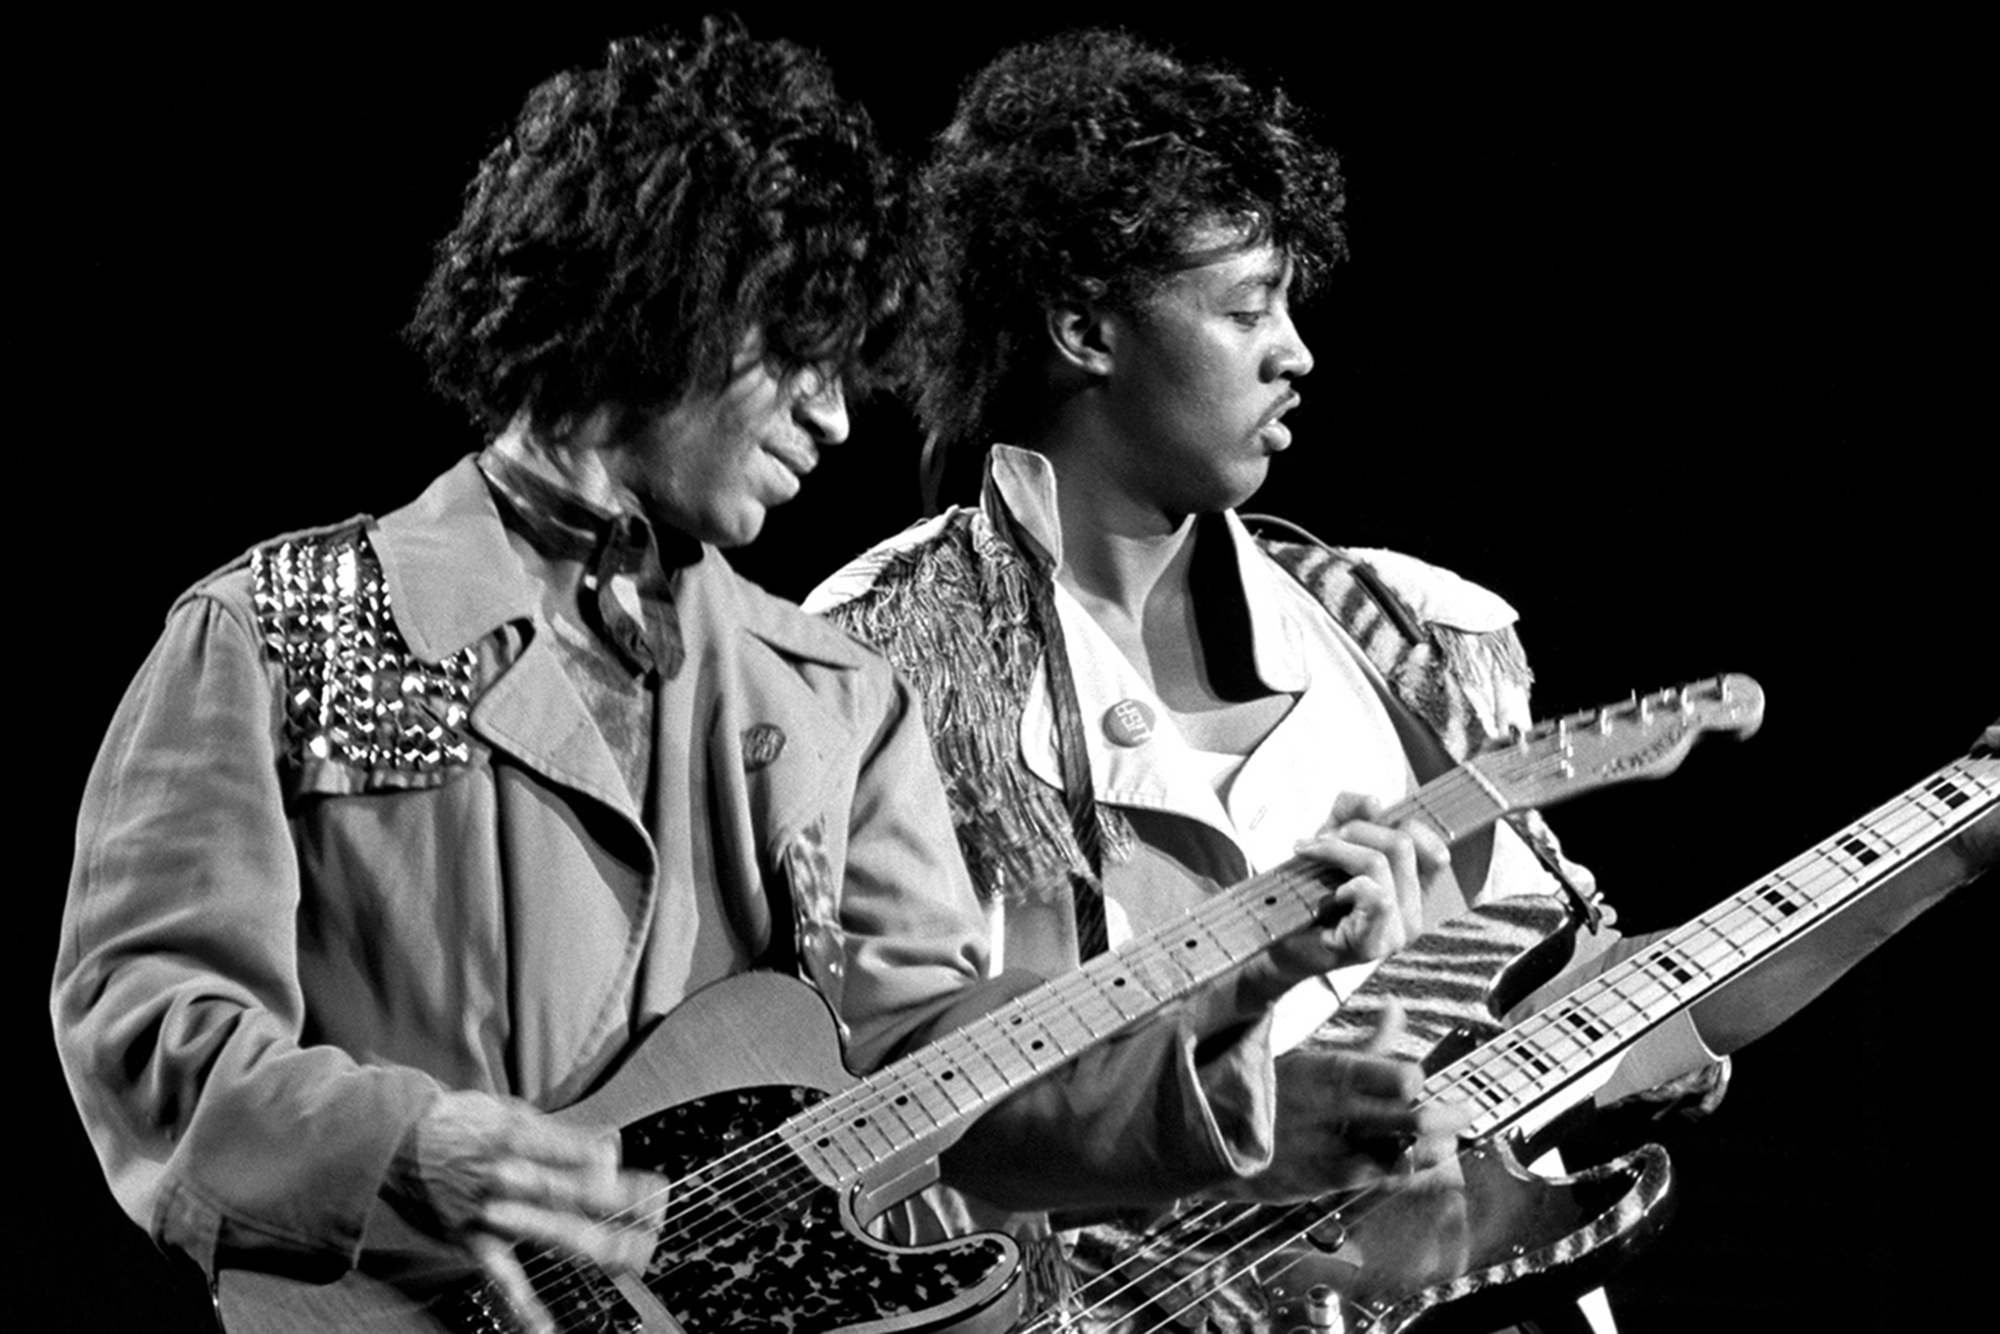 Prince fined bassist for mistakes, 'cheated' him out of millions: memoir